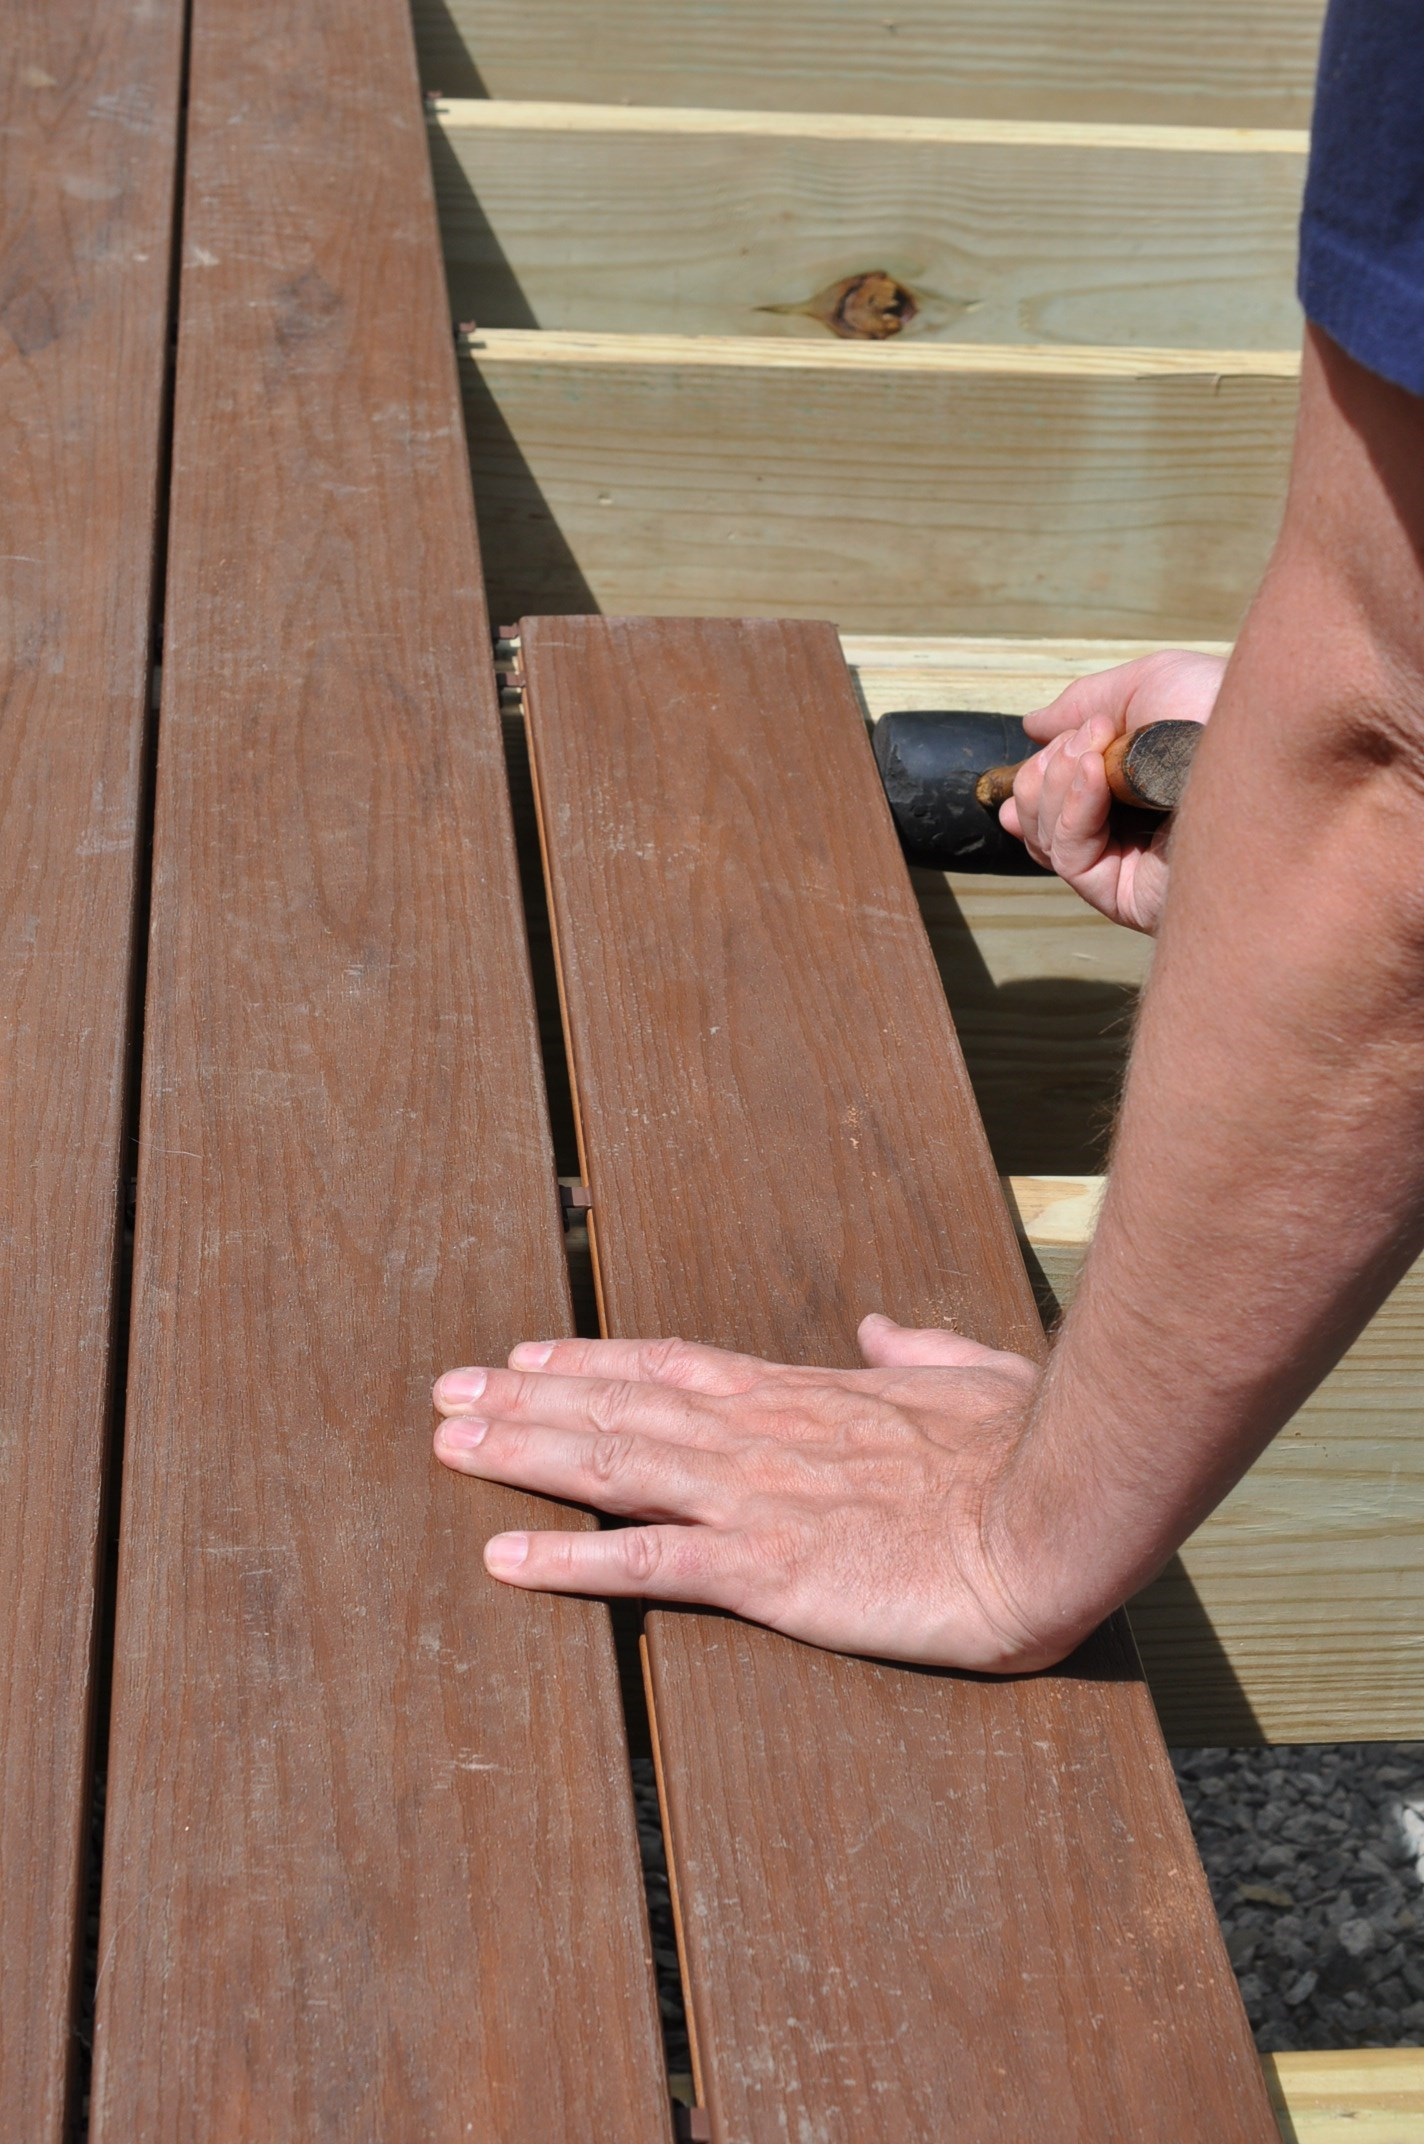 How to Attach Composite Decking | Installing Composite Decking | Trex Decking Hidden Fasteners